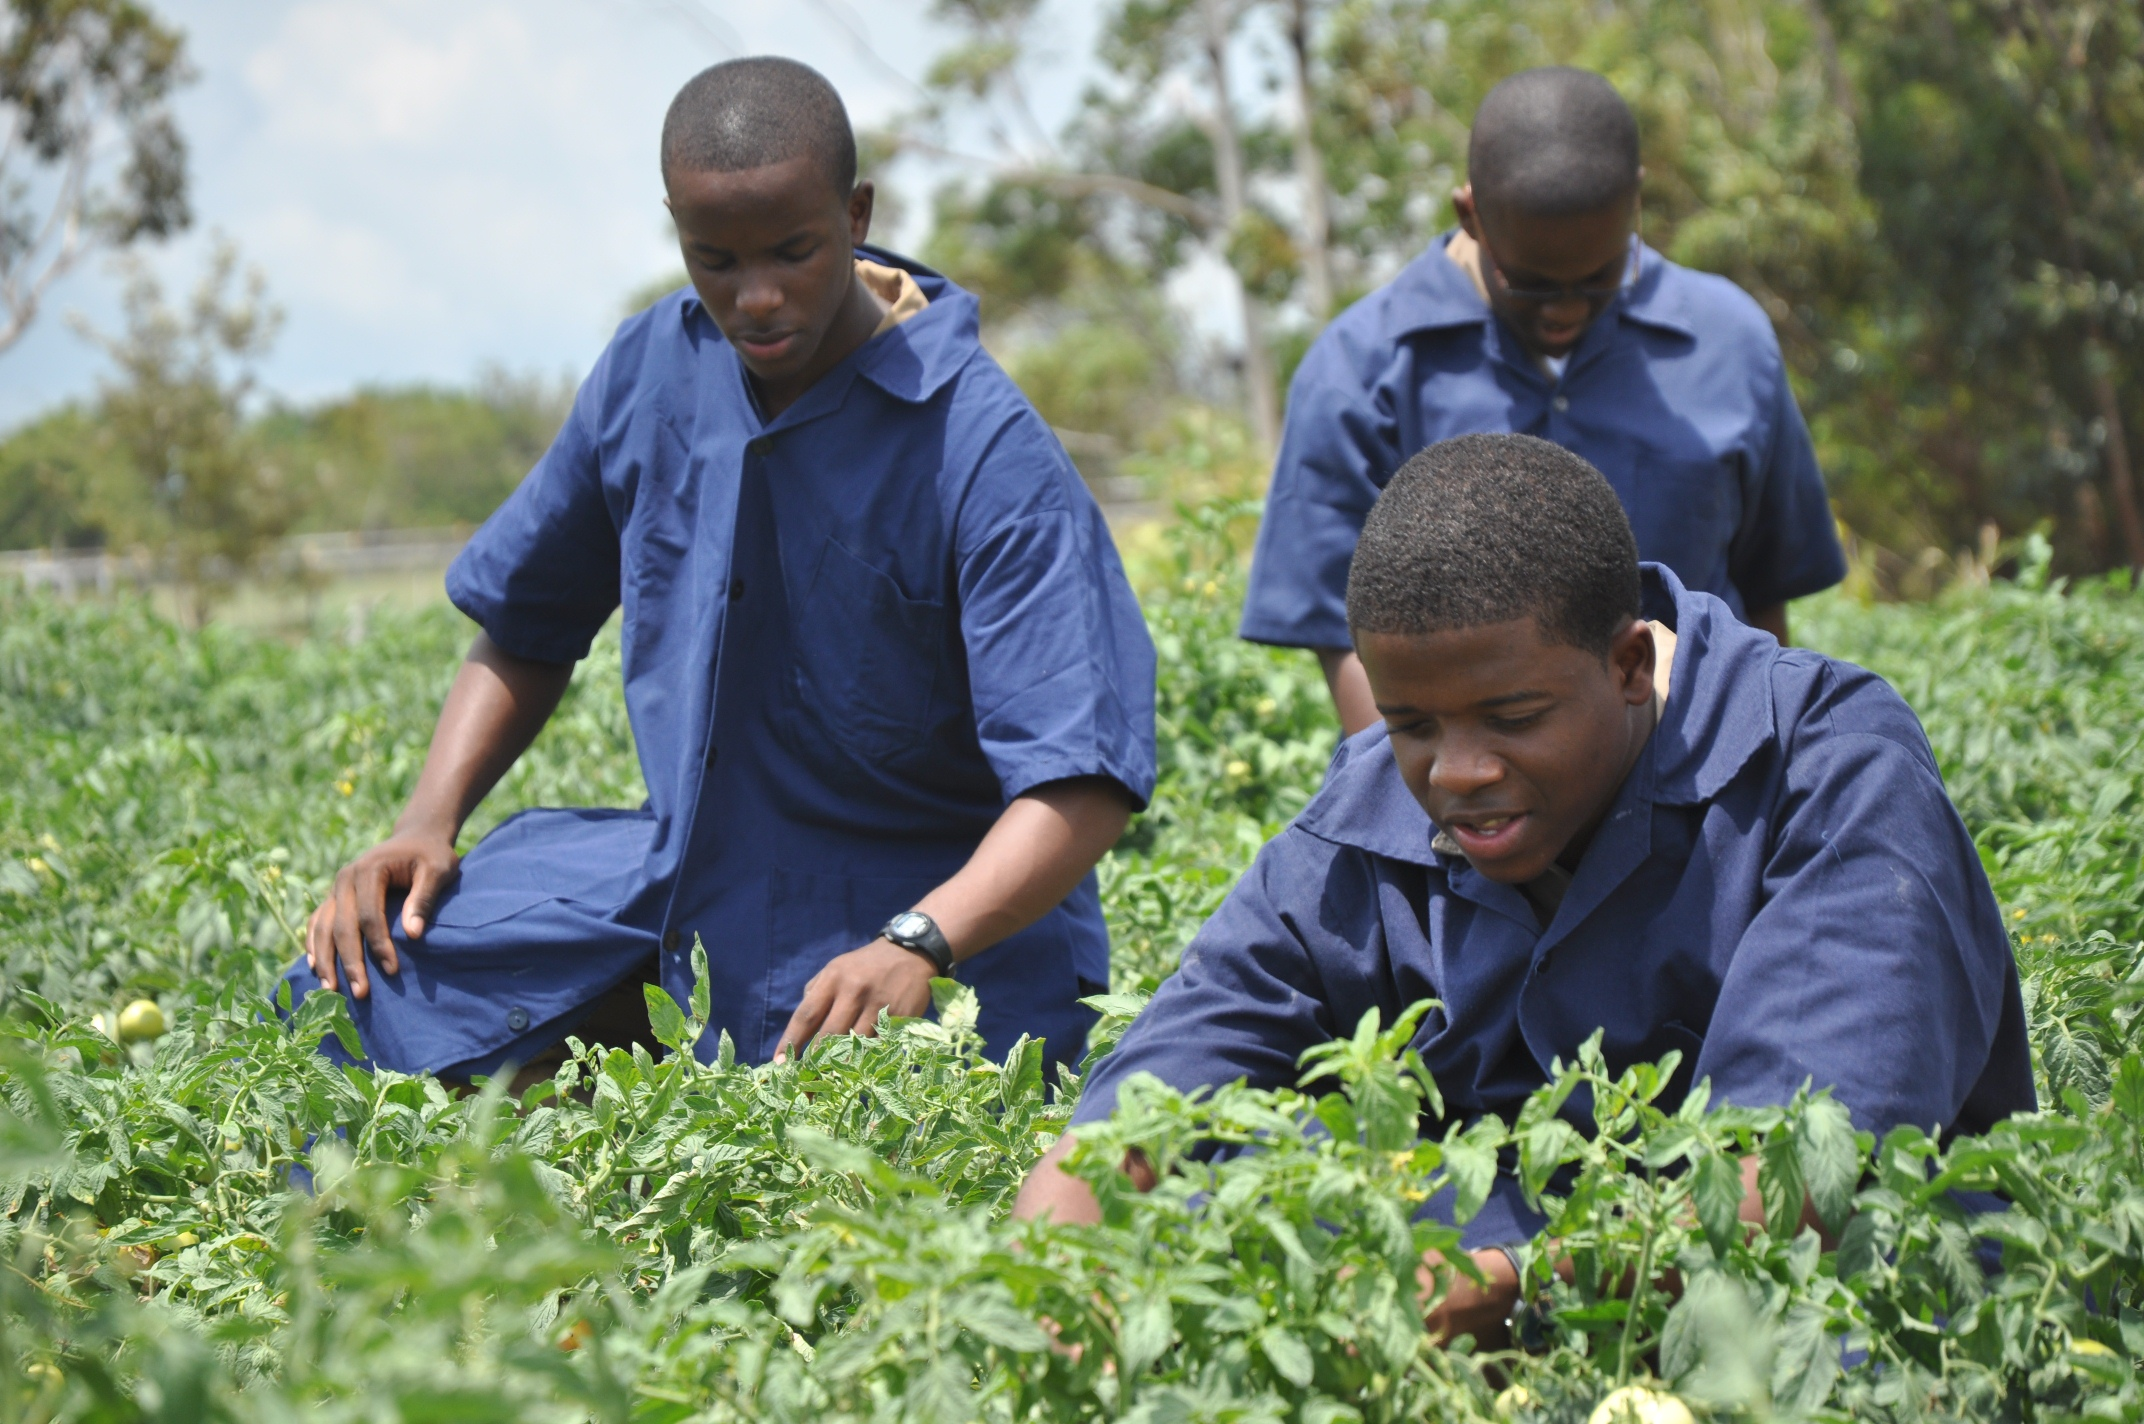 Left to right foreground: Carlton Collins and Cavon Chantilou, students at Munro College, tend to the tomato farm.